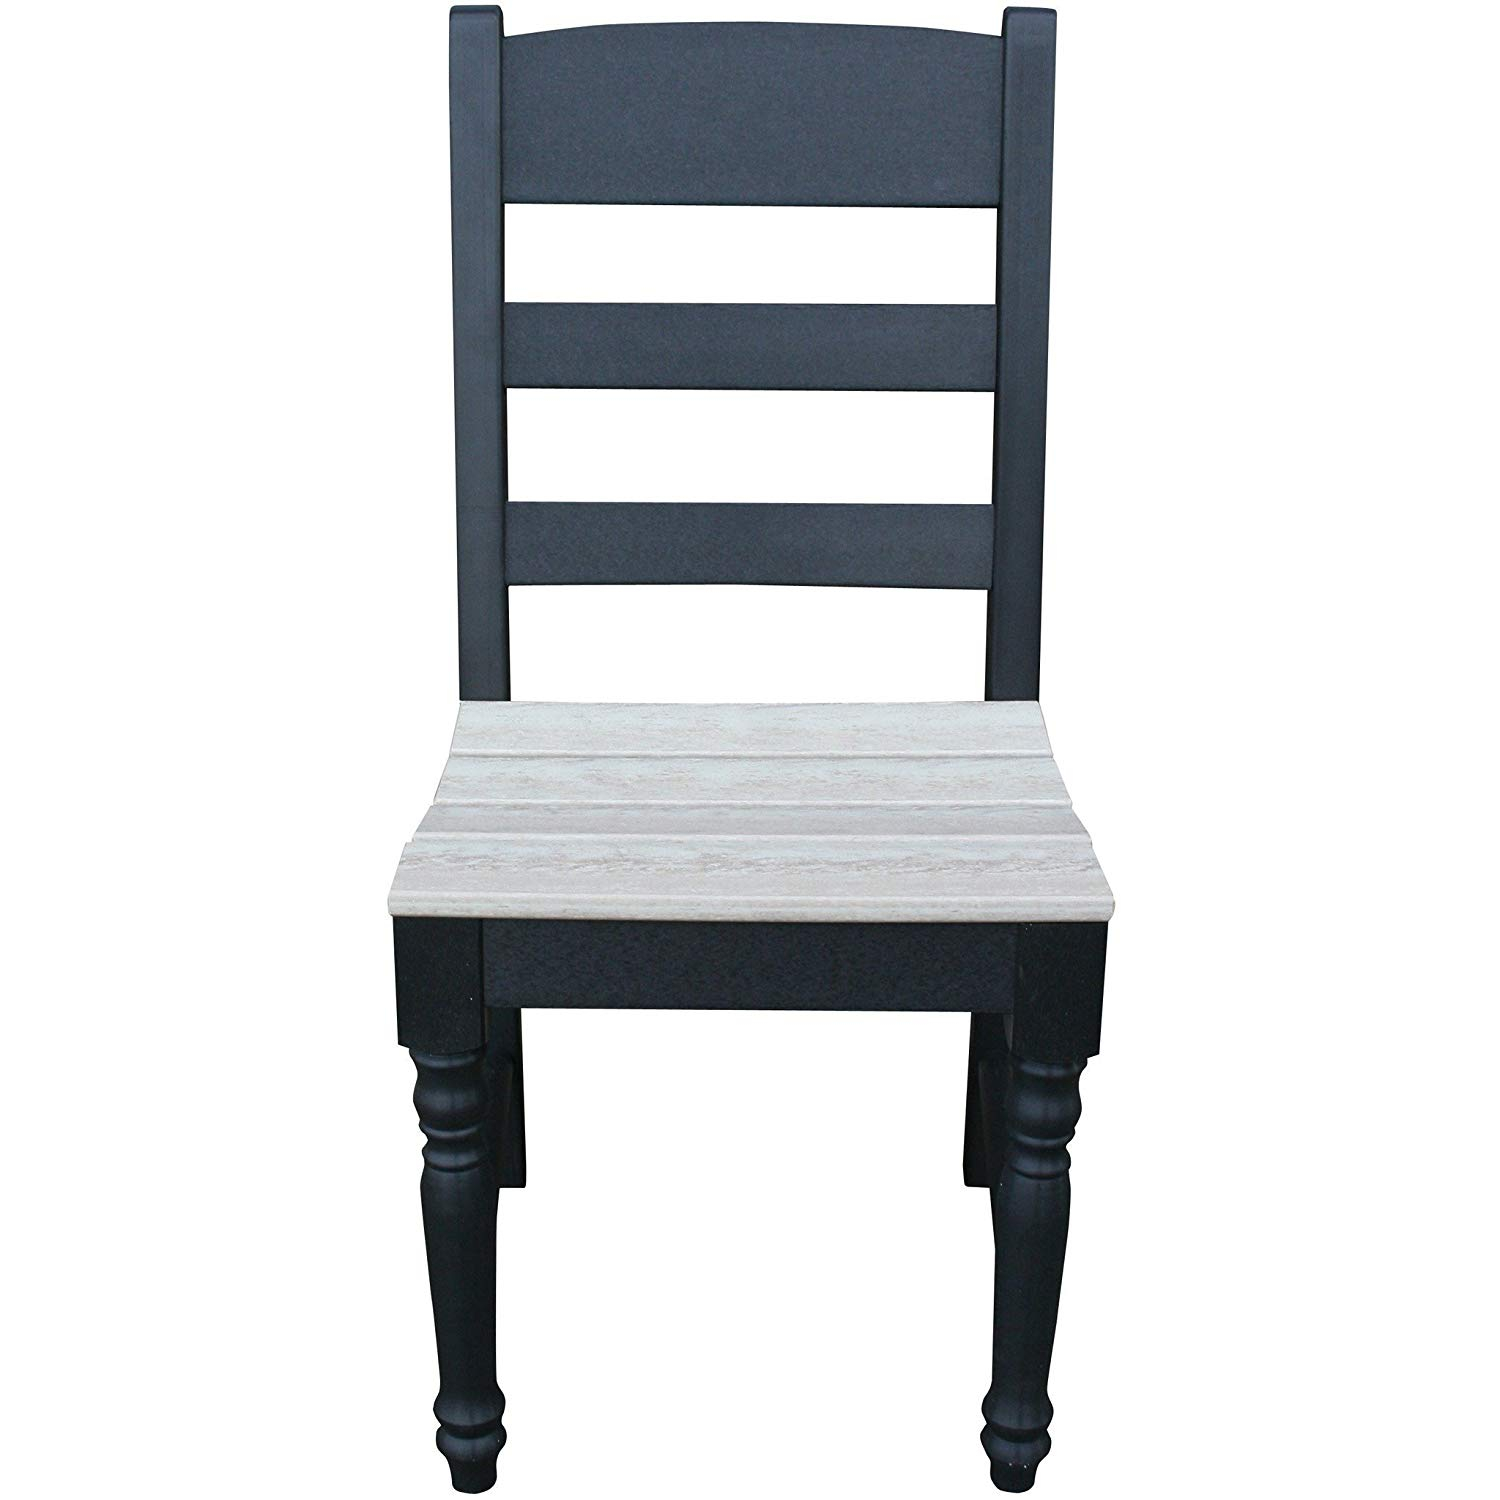 Wildridge Outdoor Farm Dining Chair - Ships in 10-14 Business Days